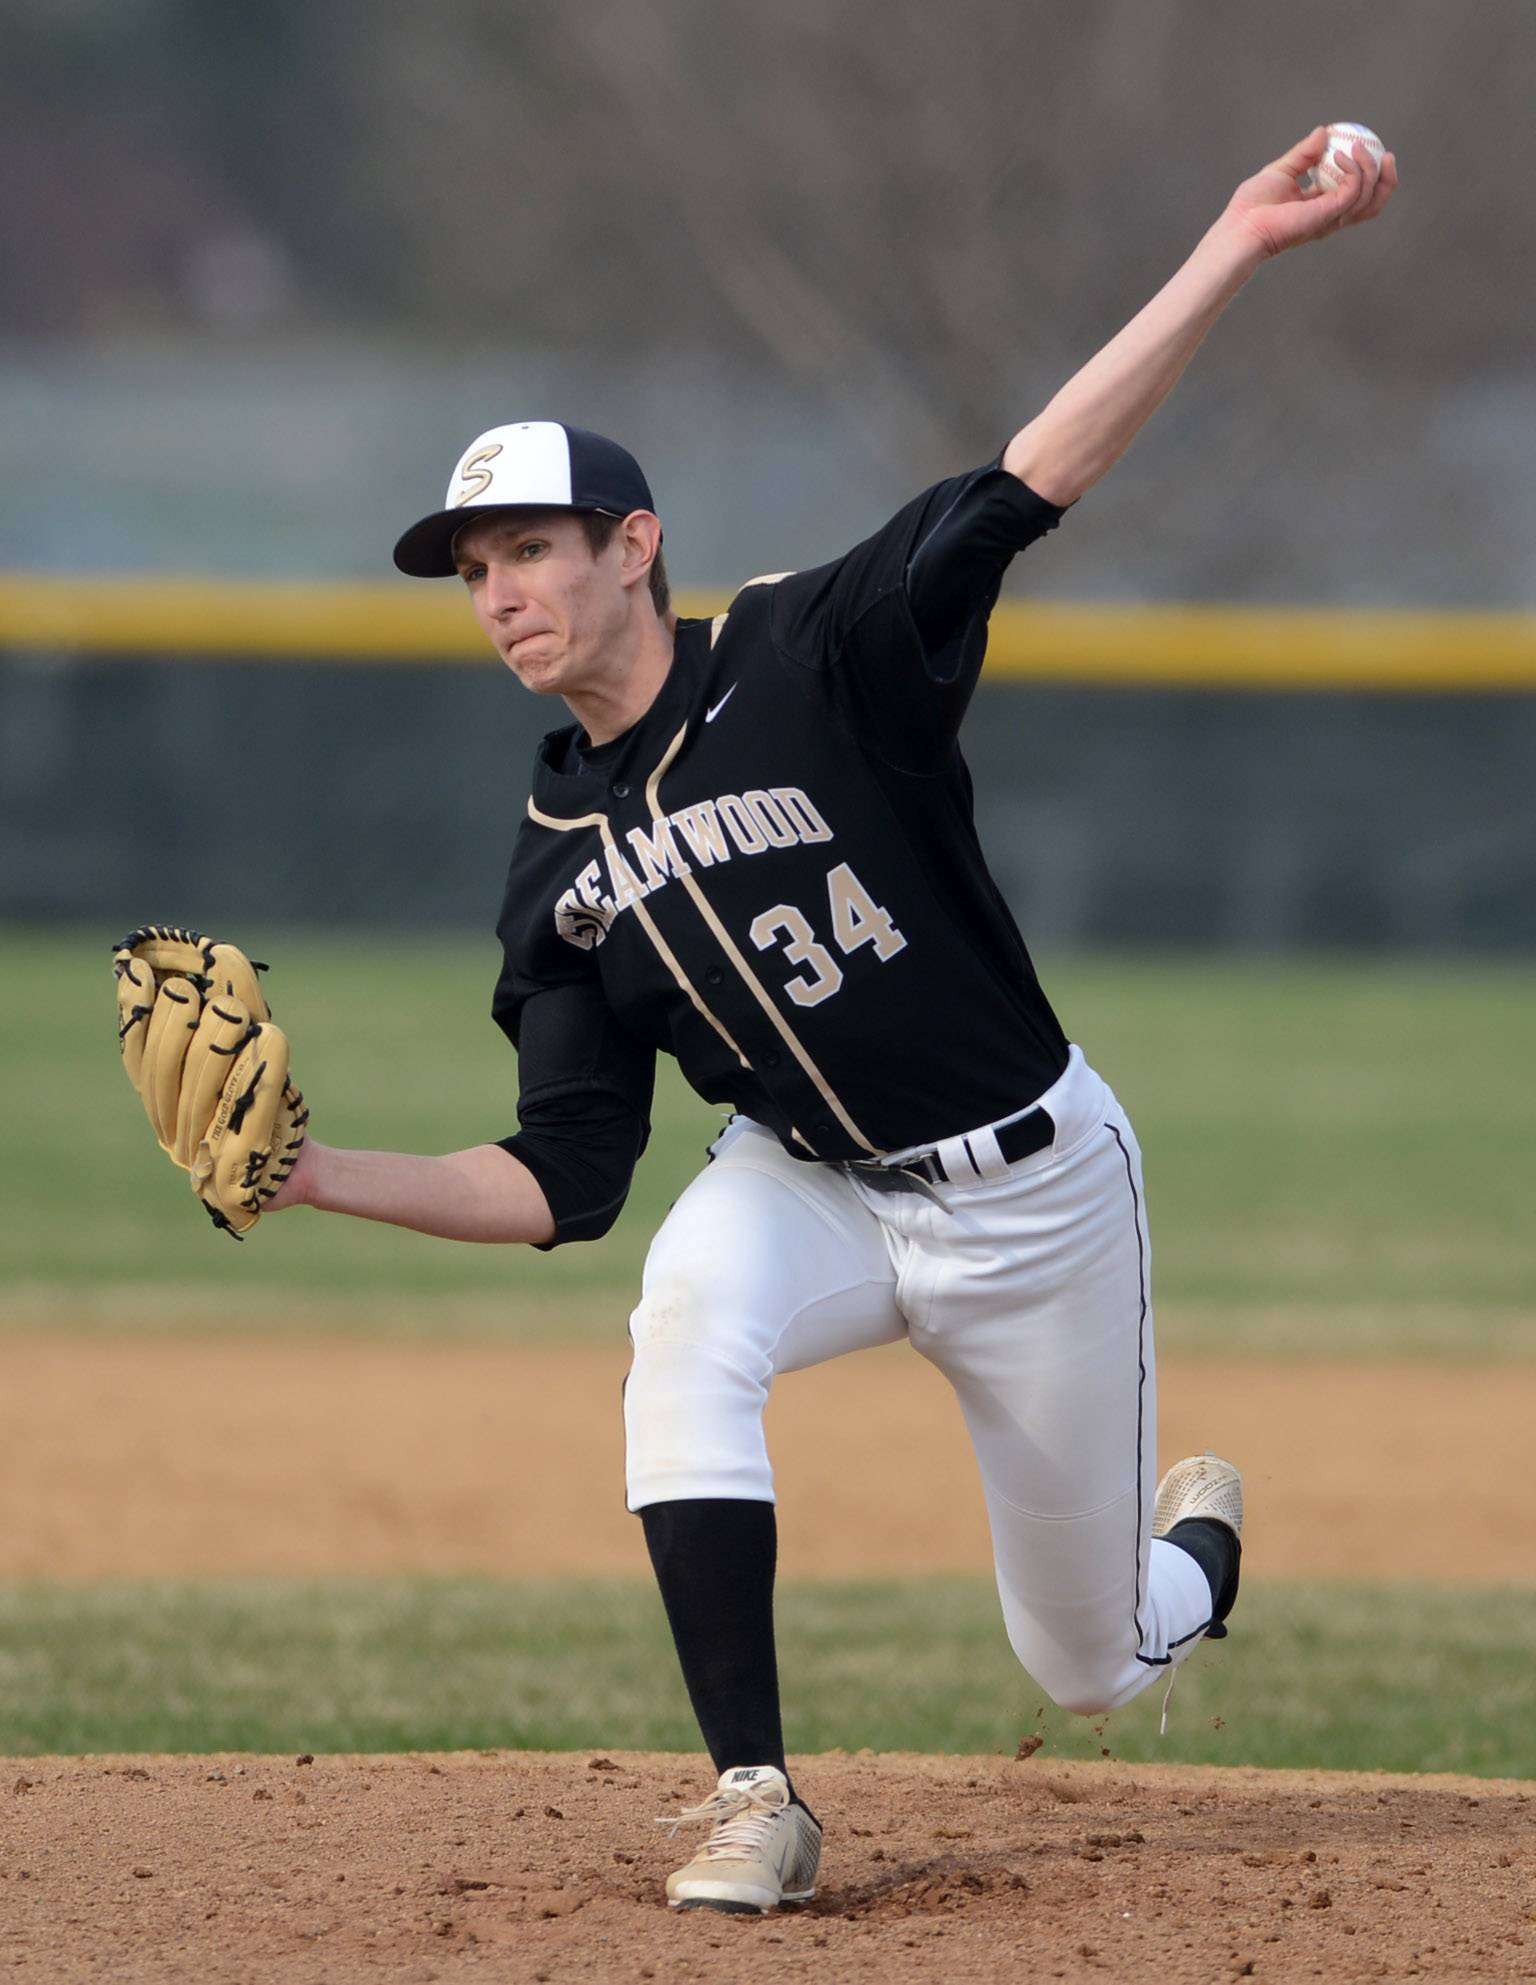 Streamwood's Kevin Sojda delivers a pitch during Thursday's game in Bartlett.